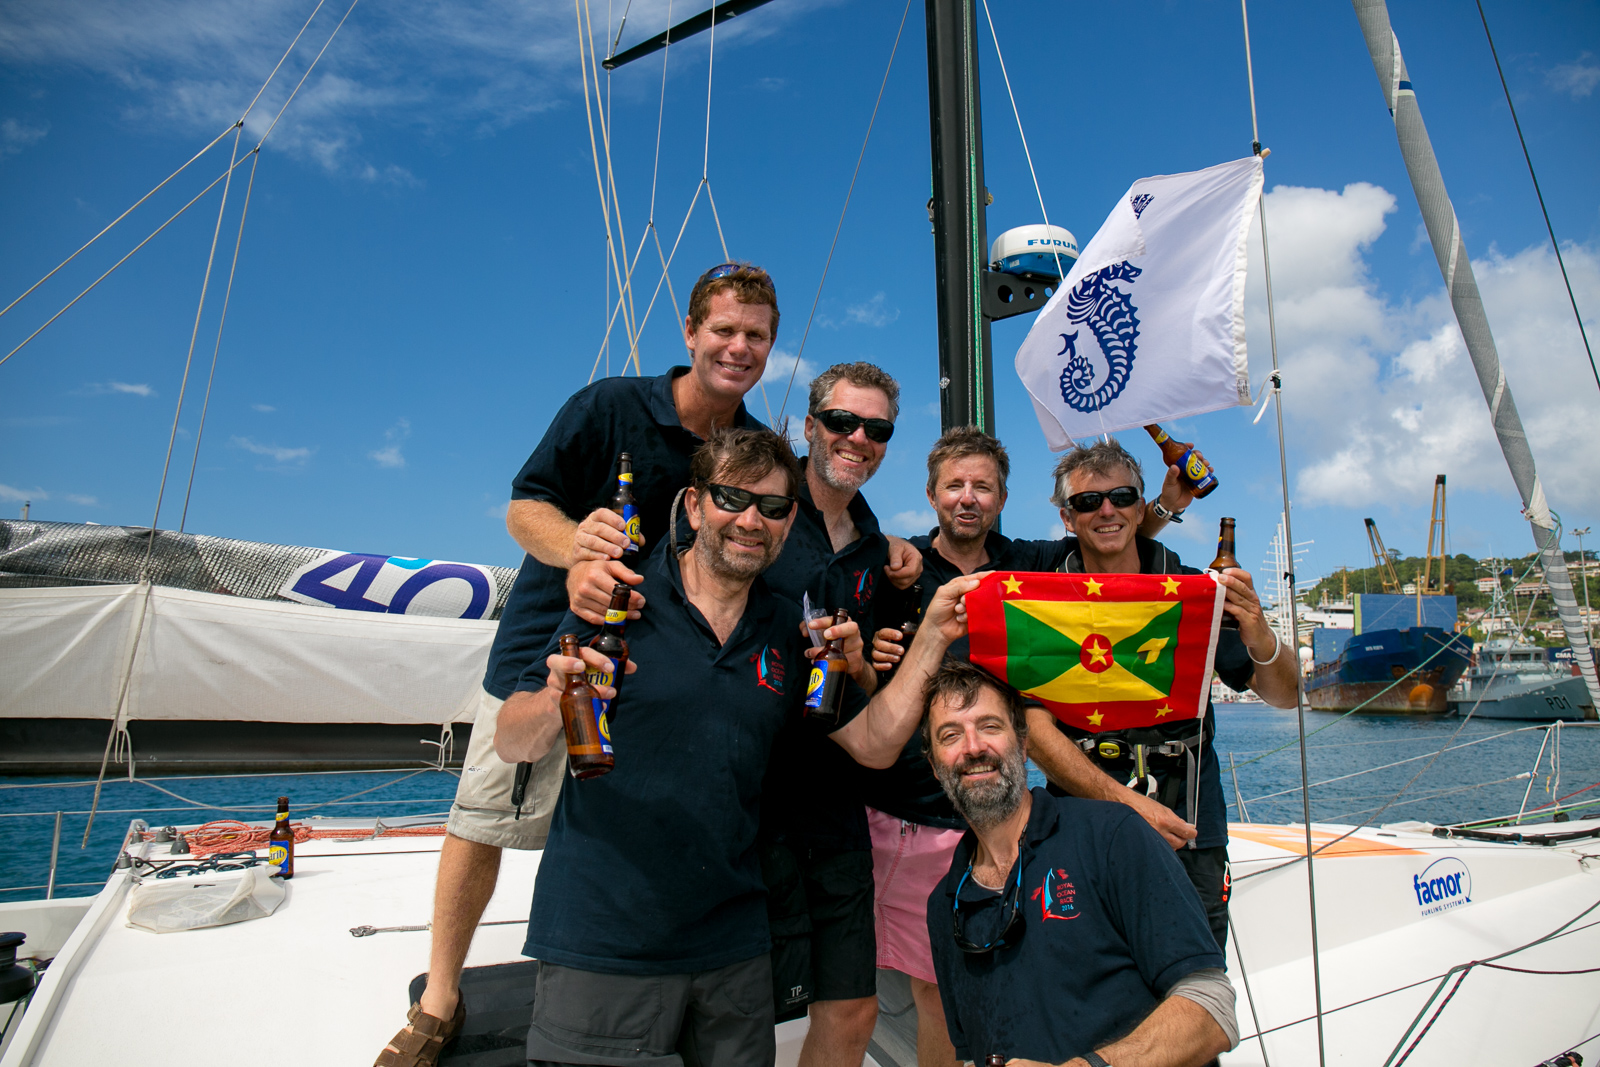 2016 rtr Second Chance crew at finish ArthurDaniel